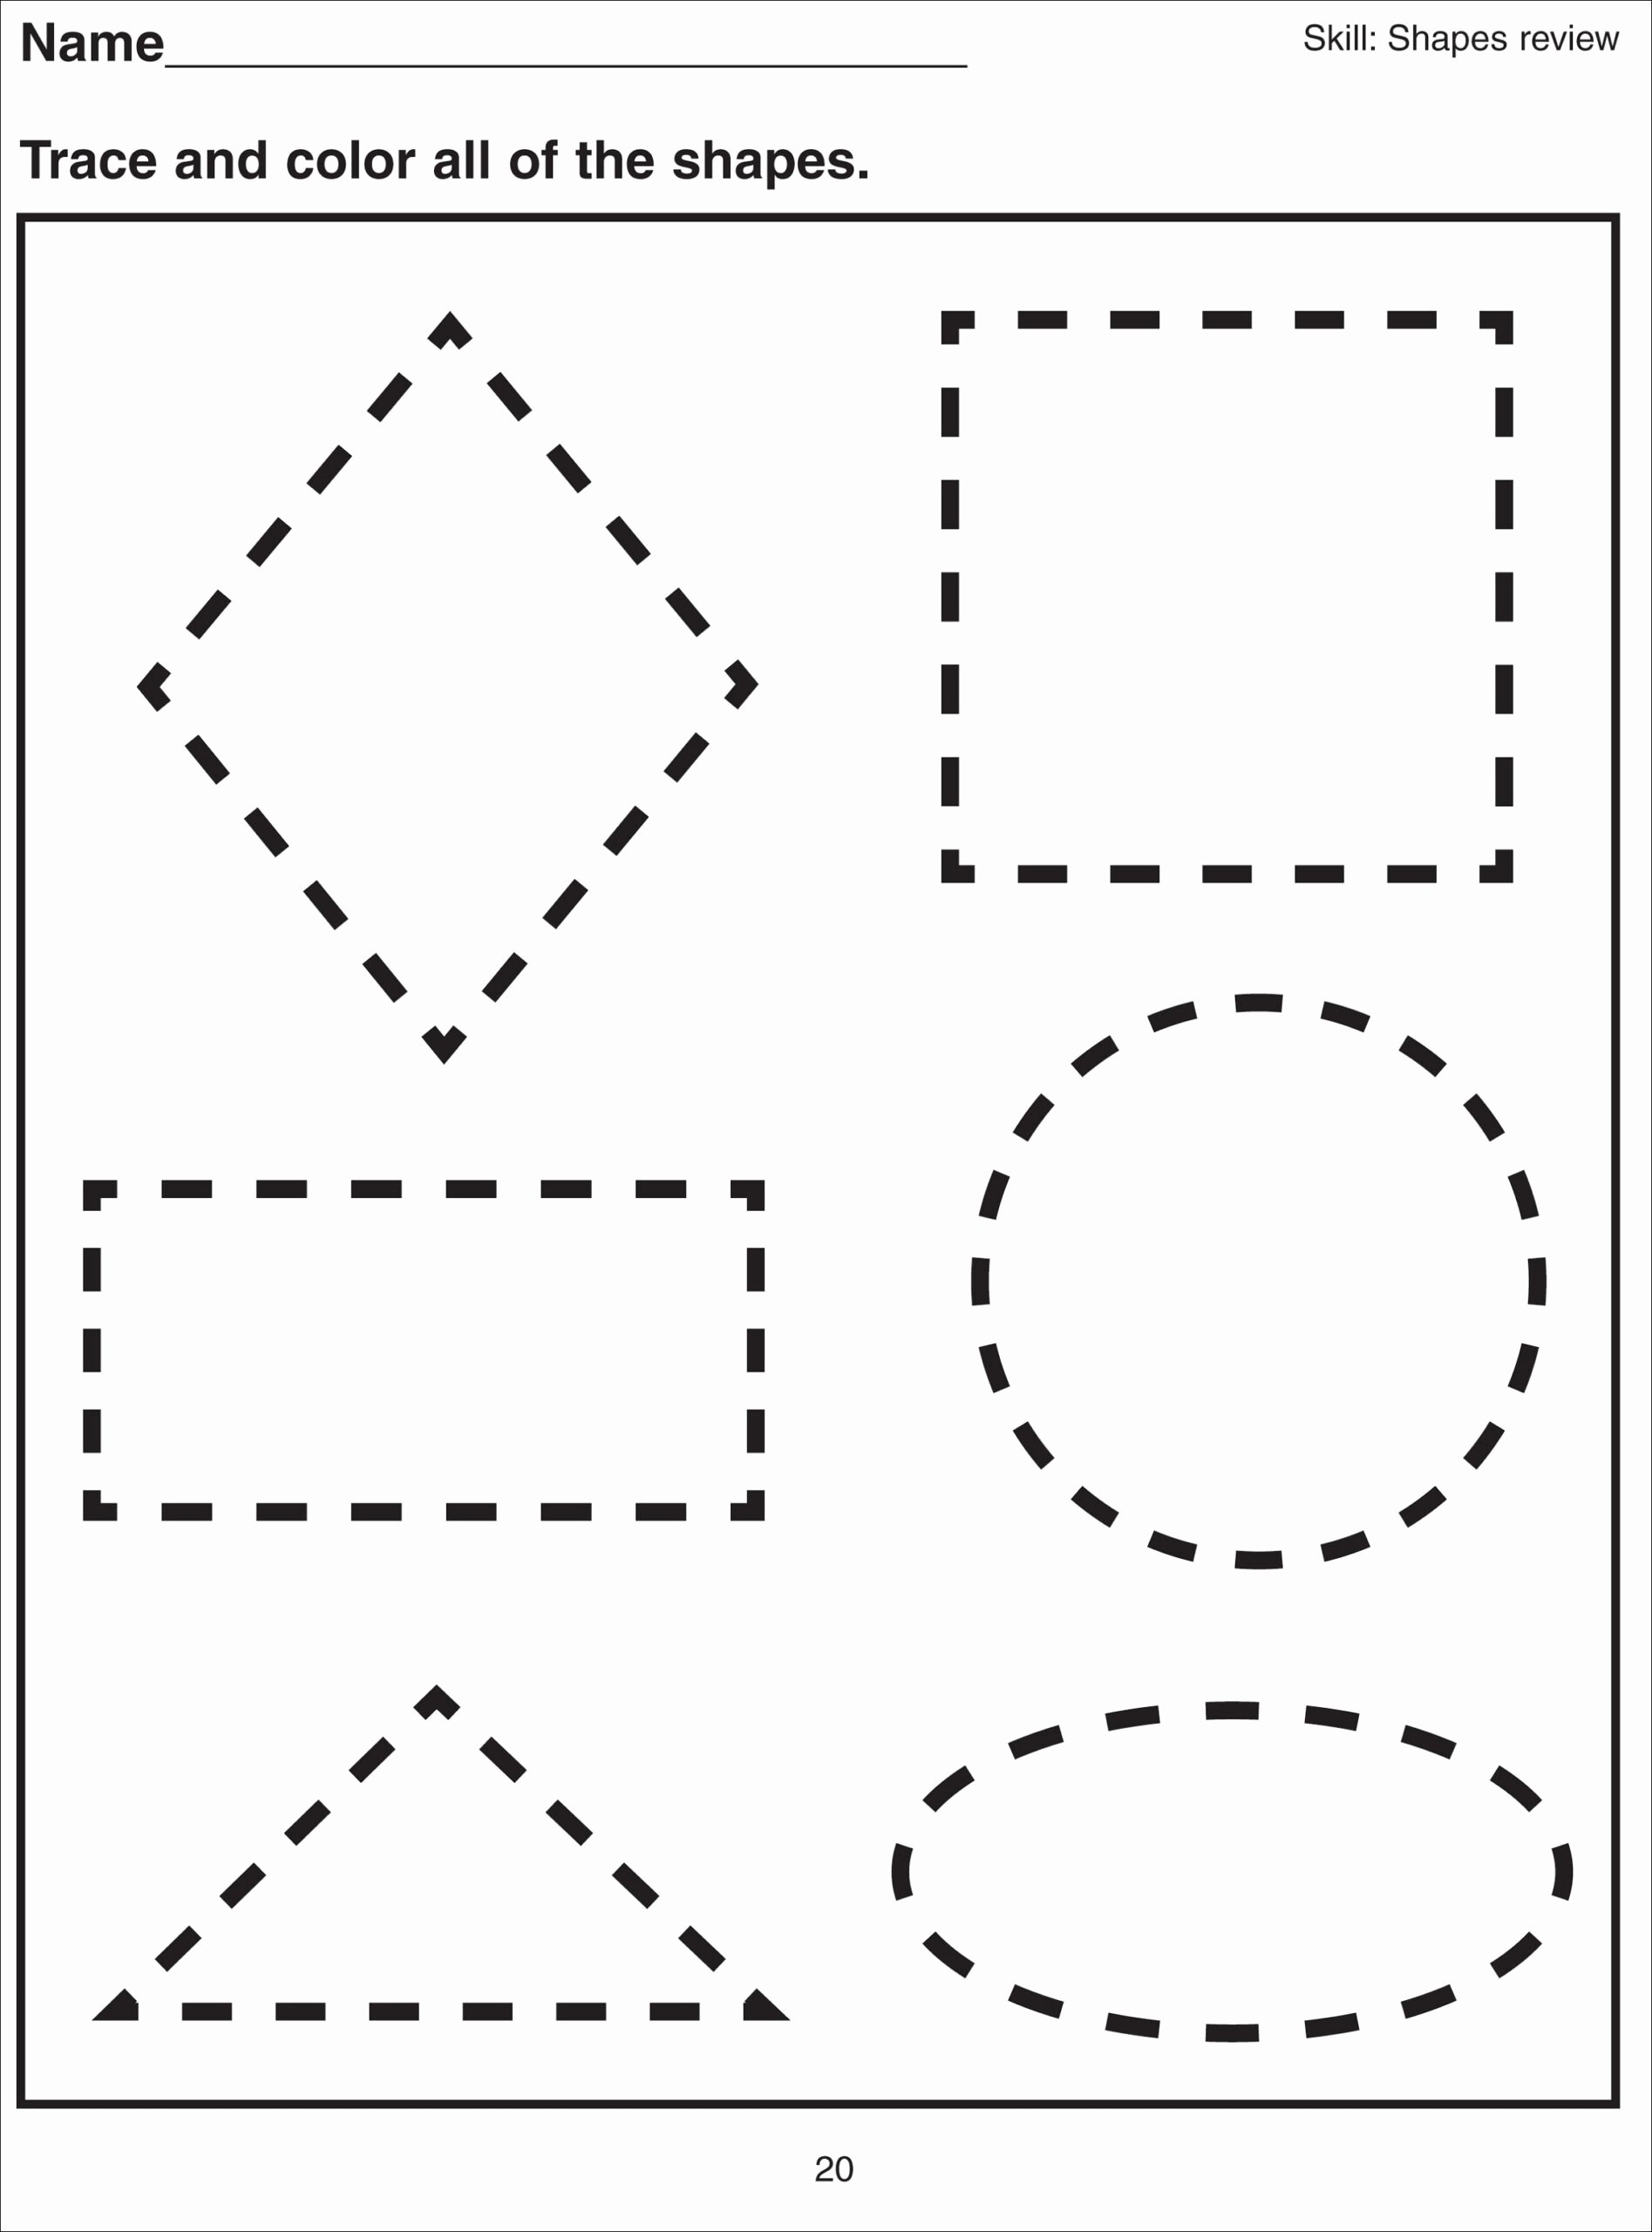 Free Shape Tracing Worksheets for Preschoolers Printable Shape Tracing Worksheets for Print Free Multiplication Table